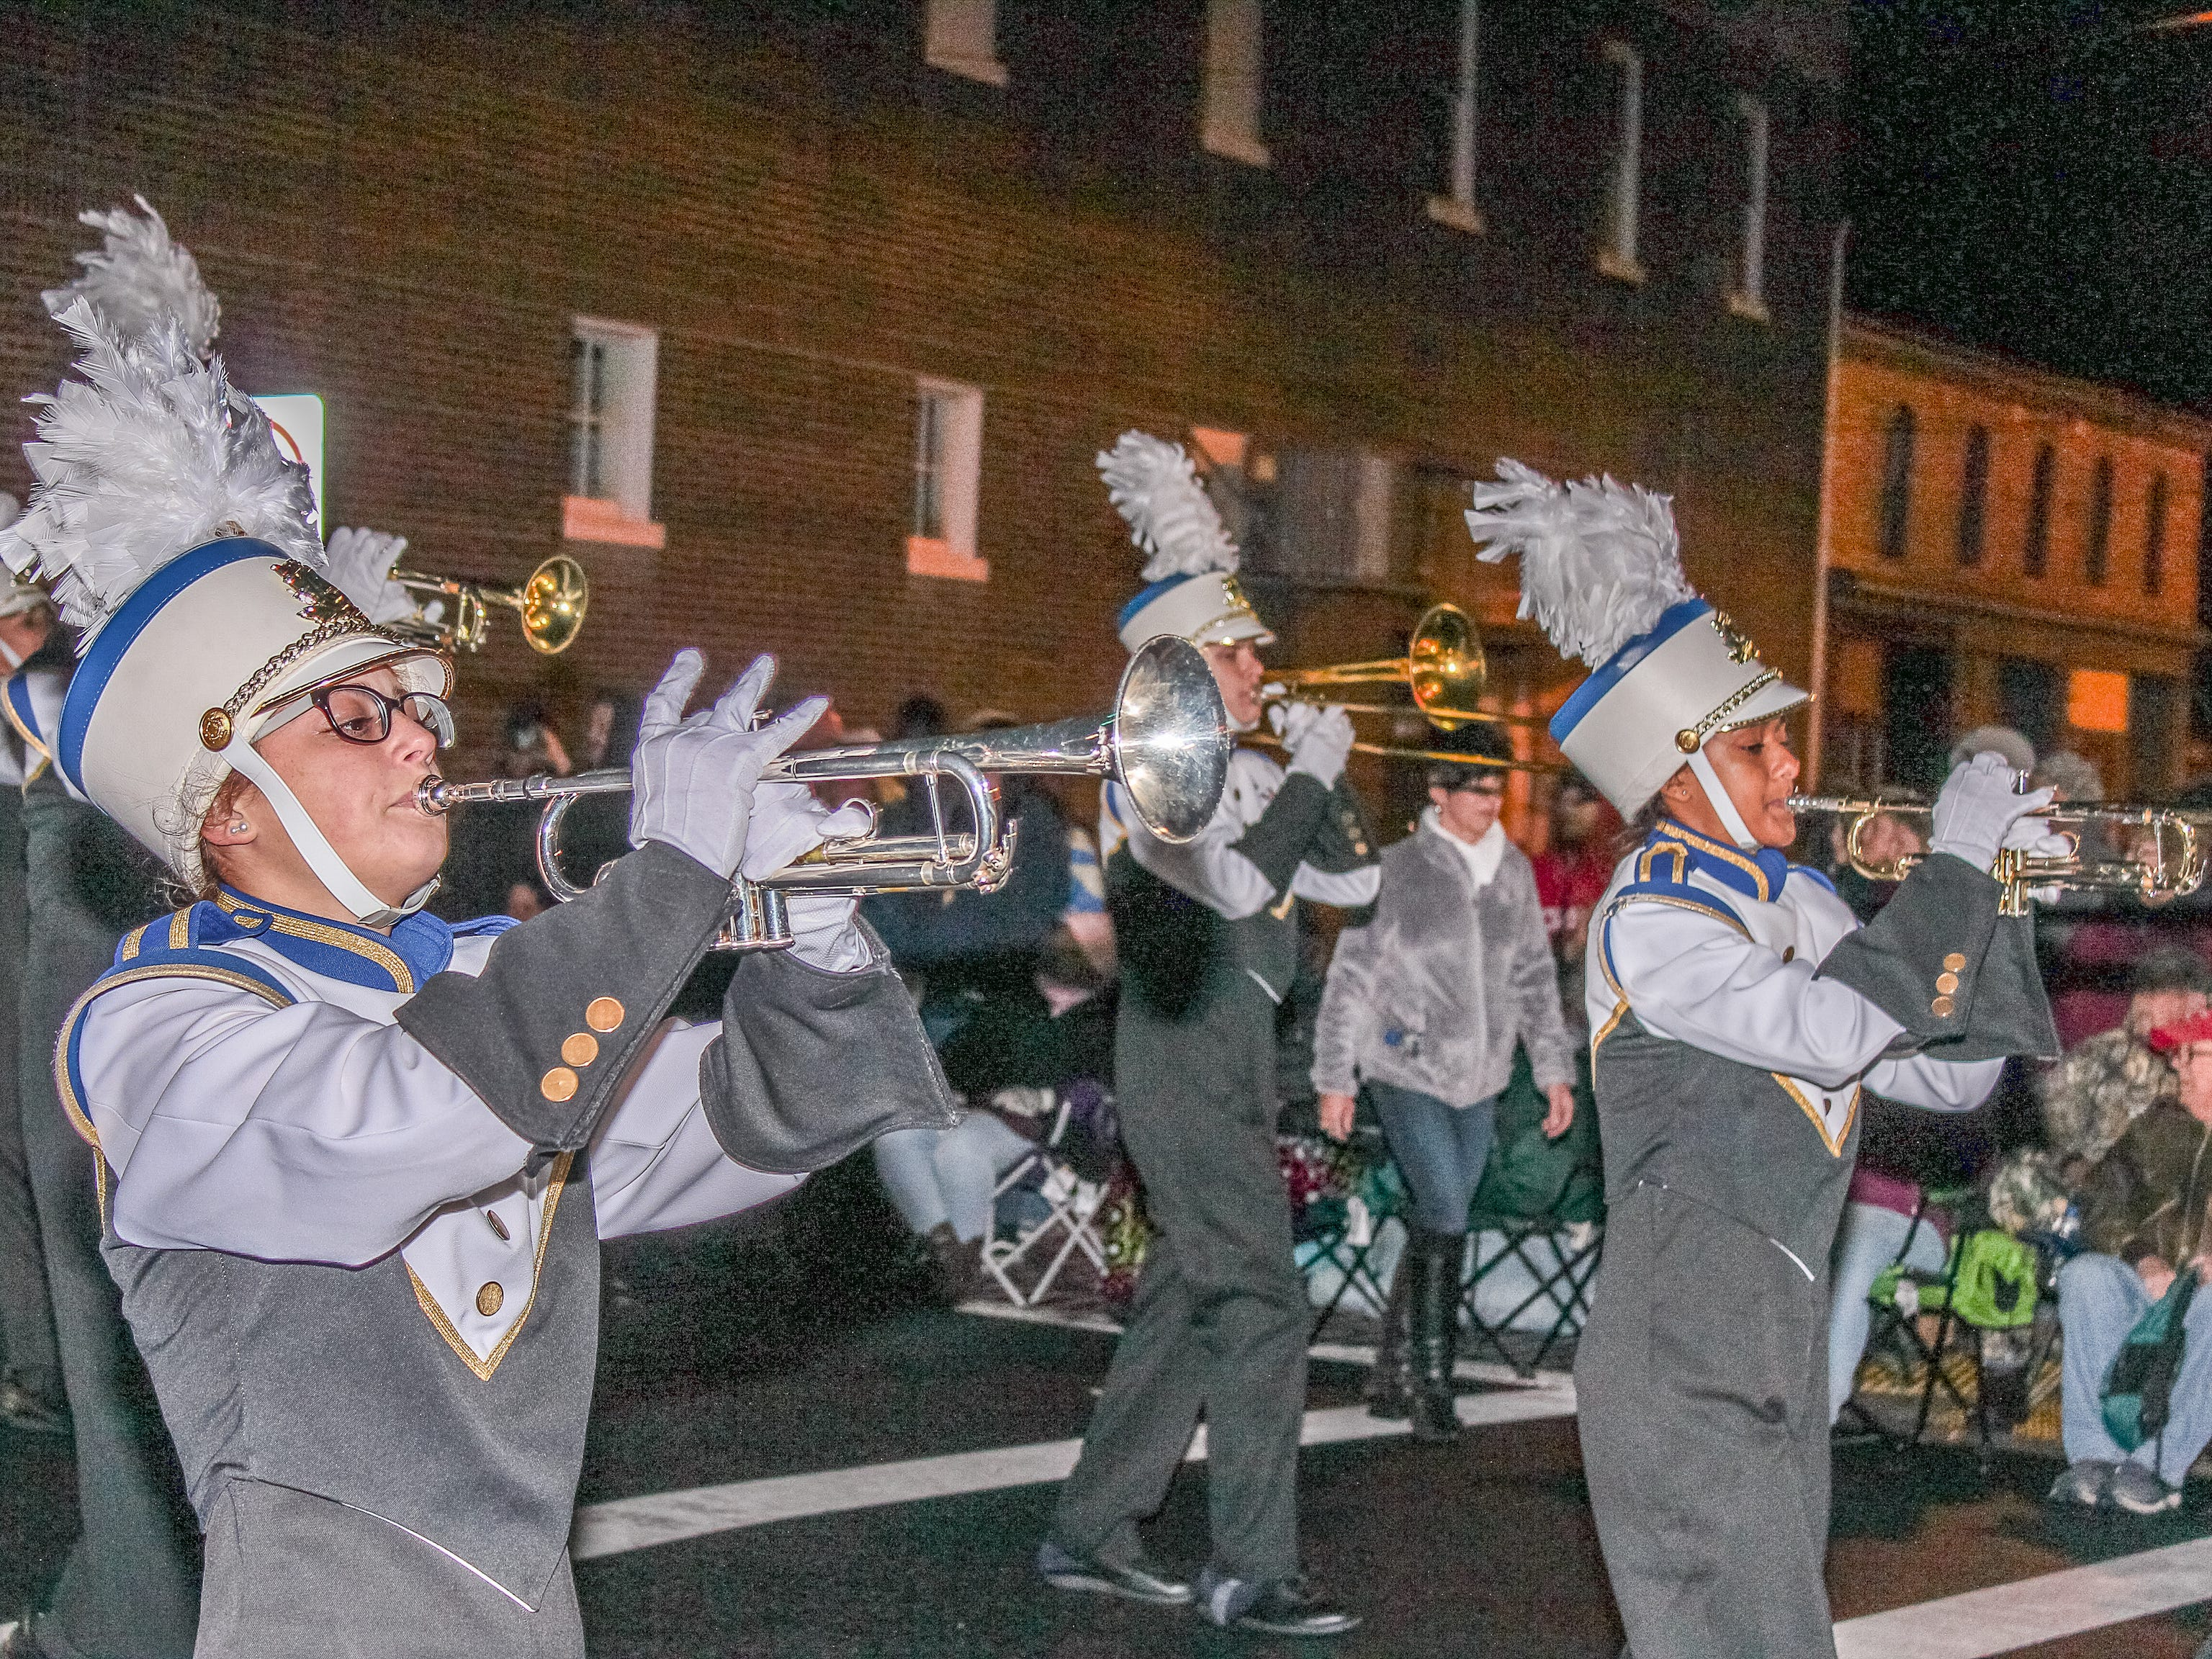 Pocomoke High School marching band performs at the Christmas parade.